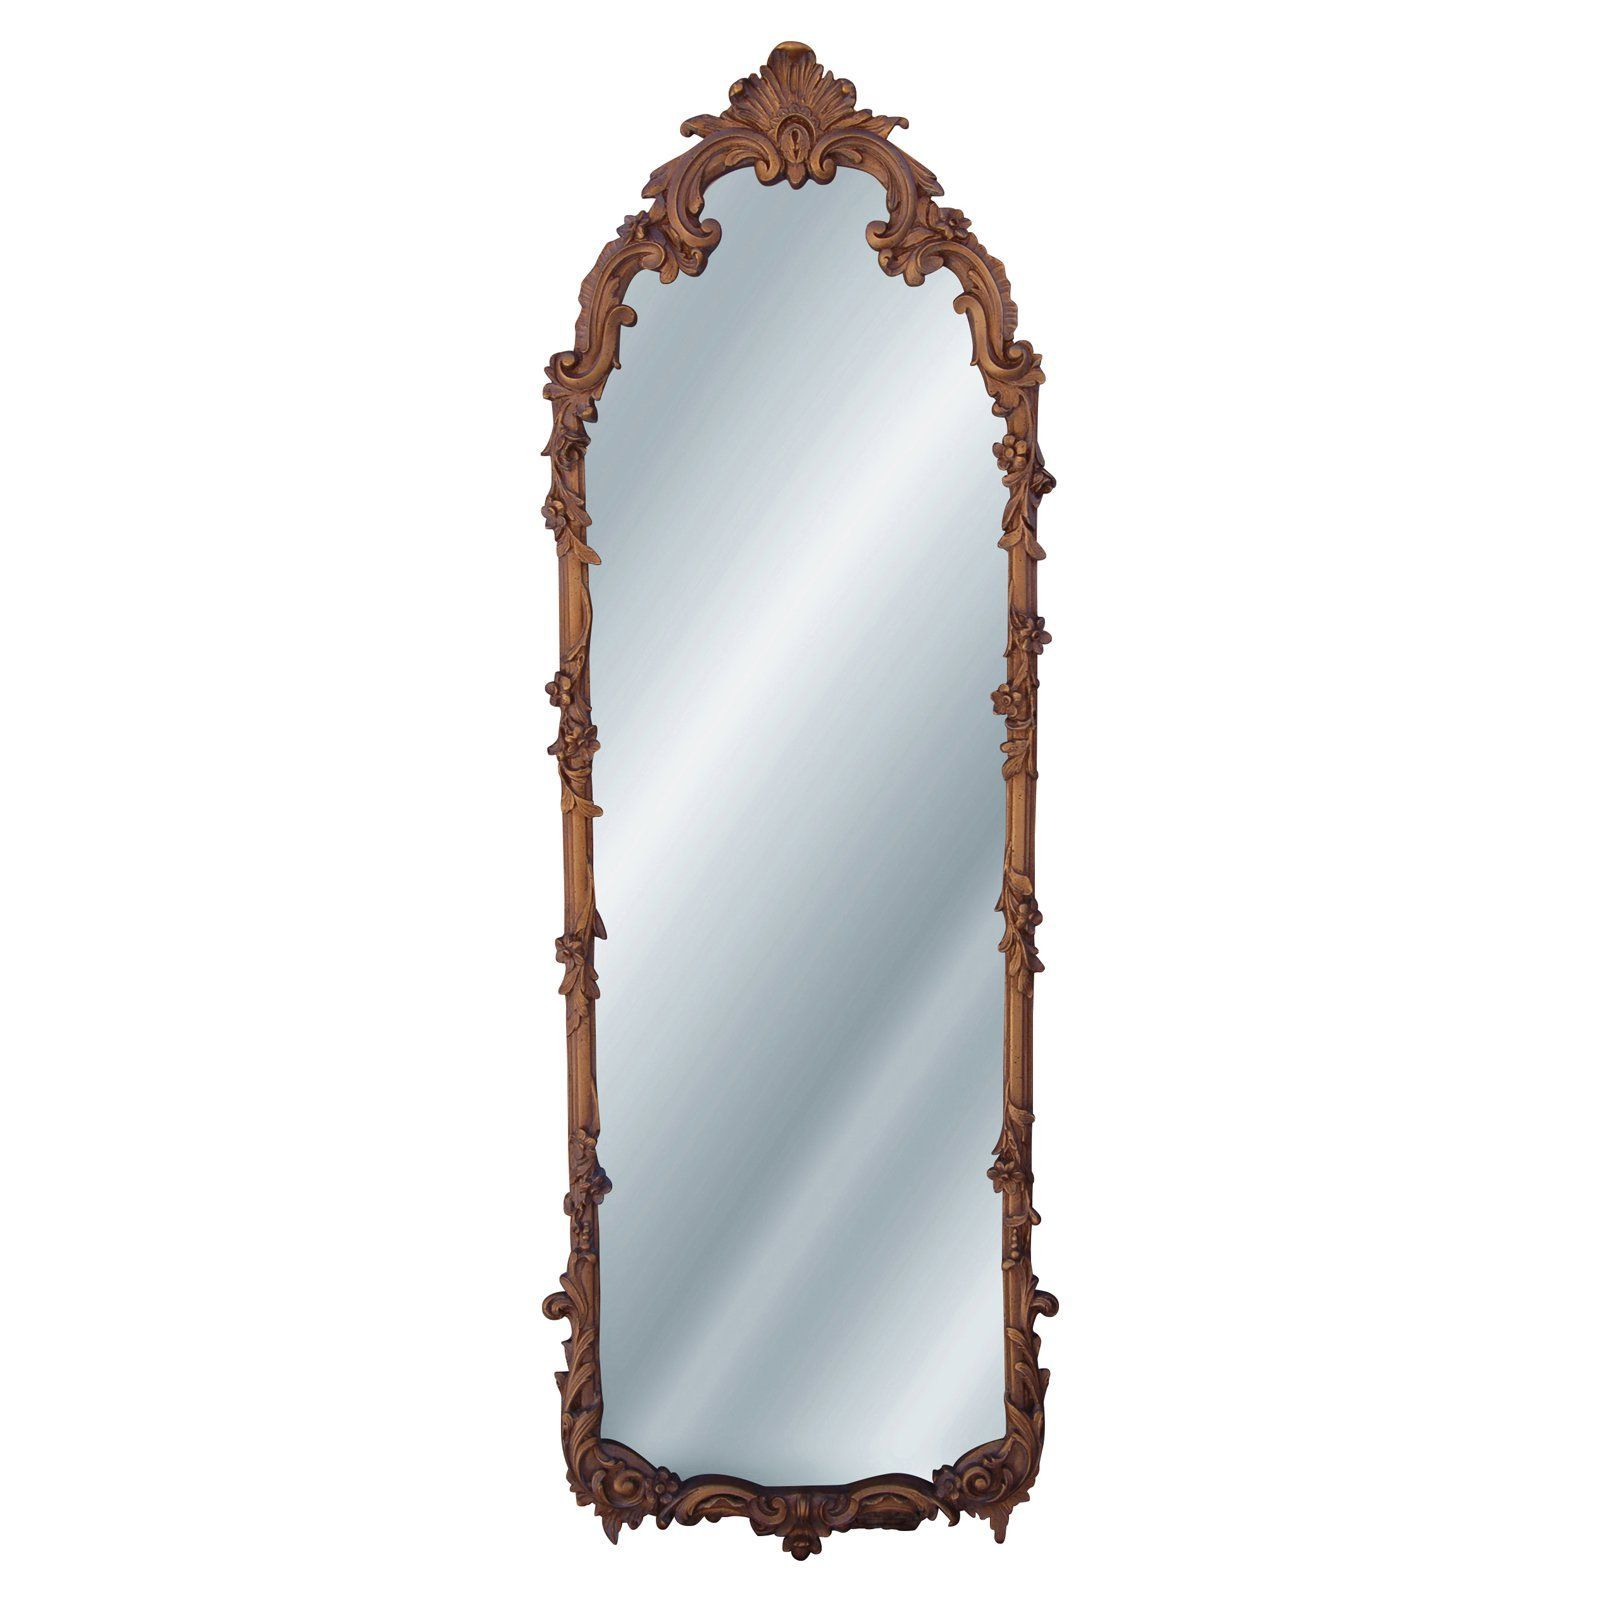 Hickory Manor House Dressing Wall Mirror - 16W x 49H in.   from hayneedle.com